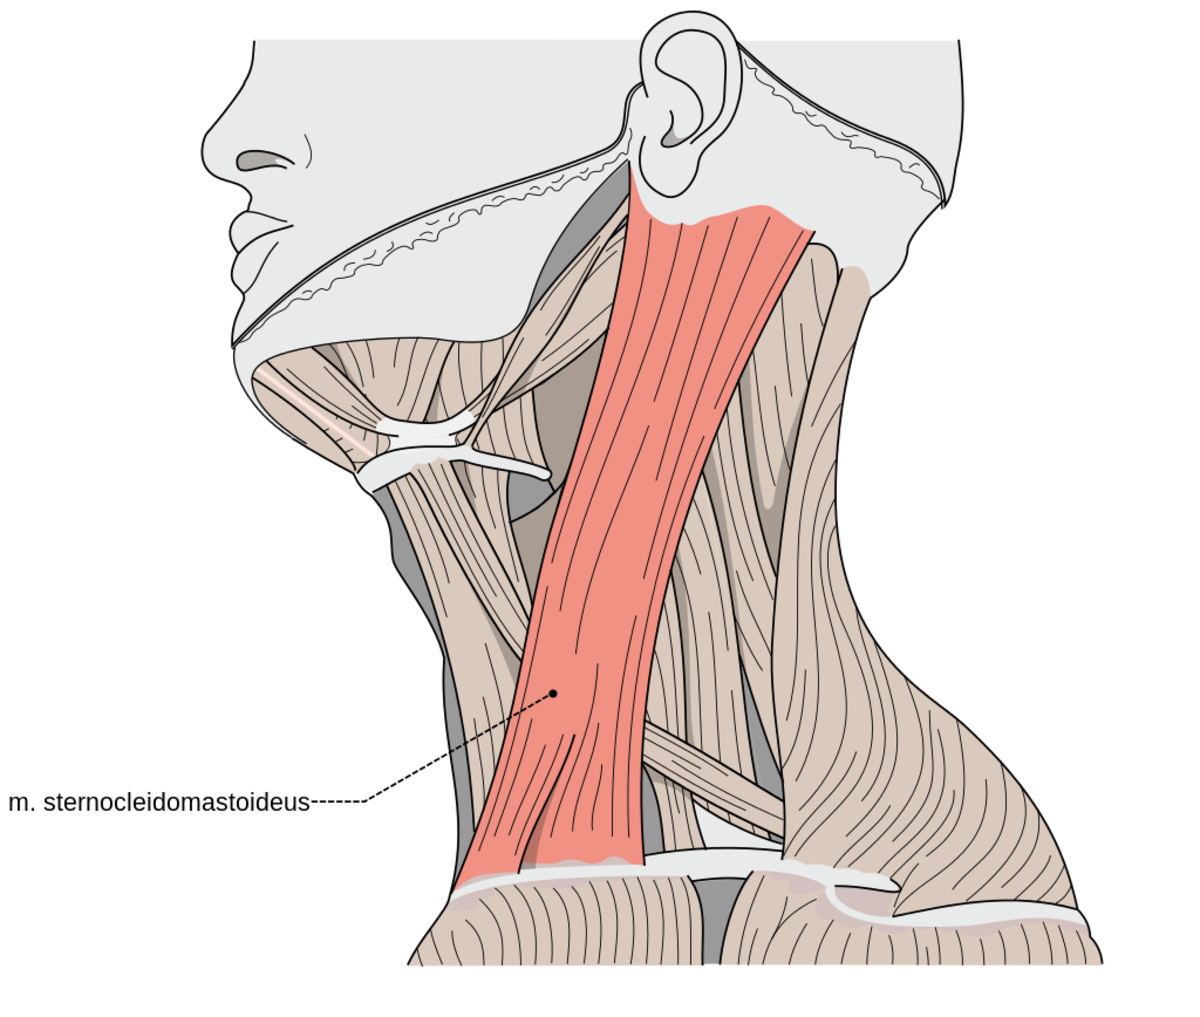 the sternocleidomastoid muscle - a culprit of widespread muscle, Human Body